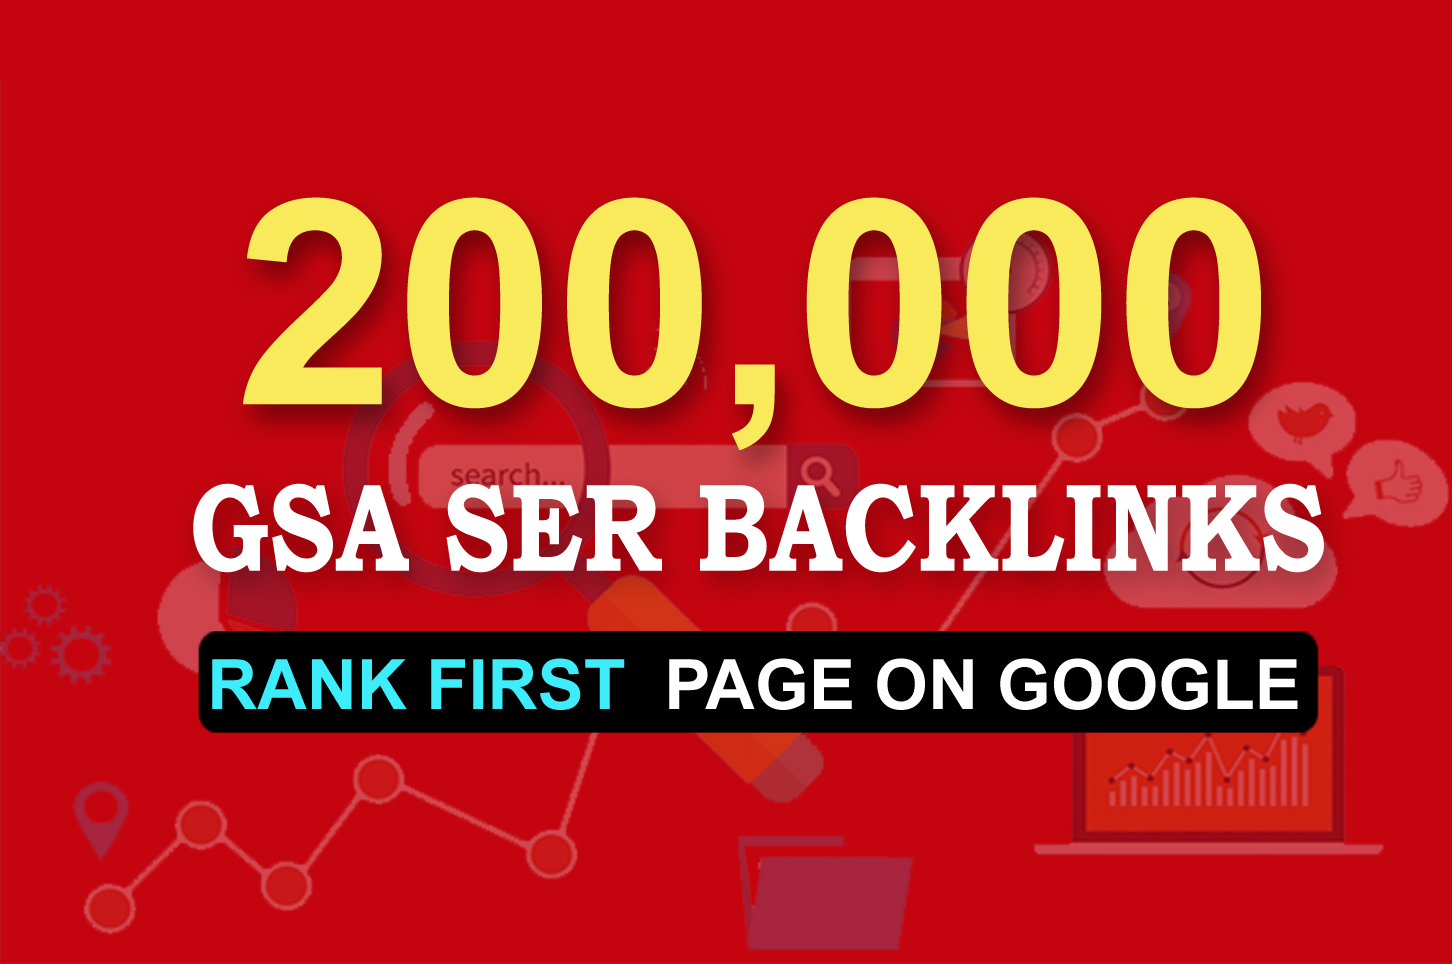 Provide 200,000 High quality GSA SER SEO Backlinks